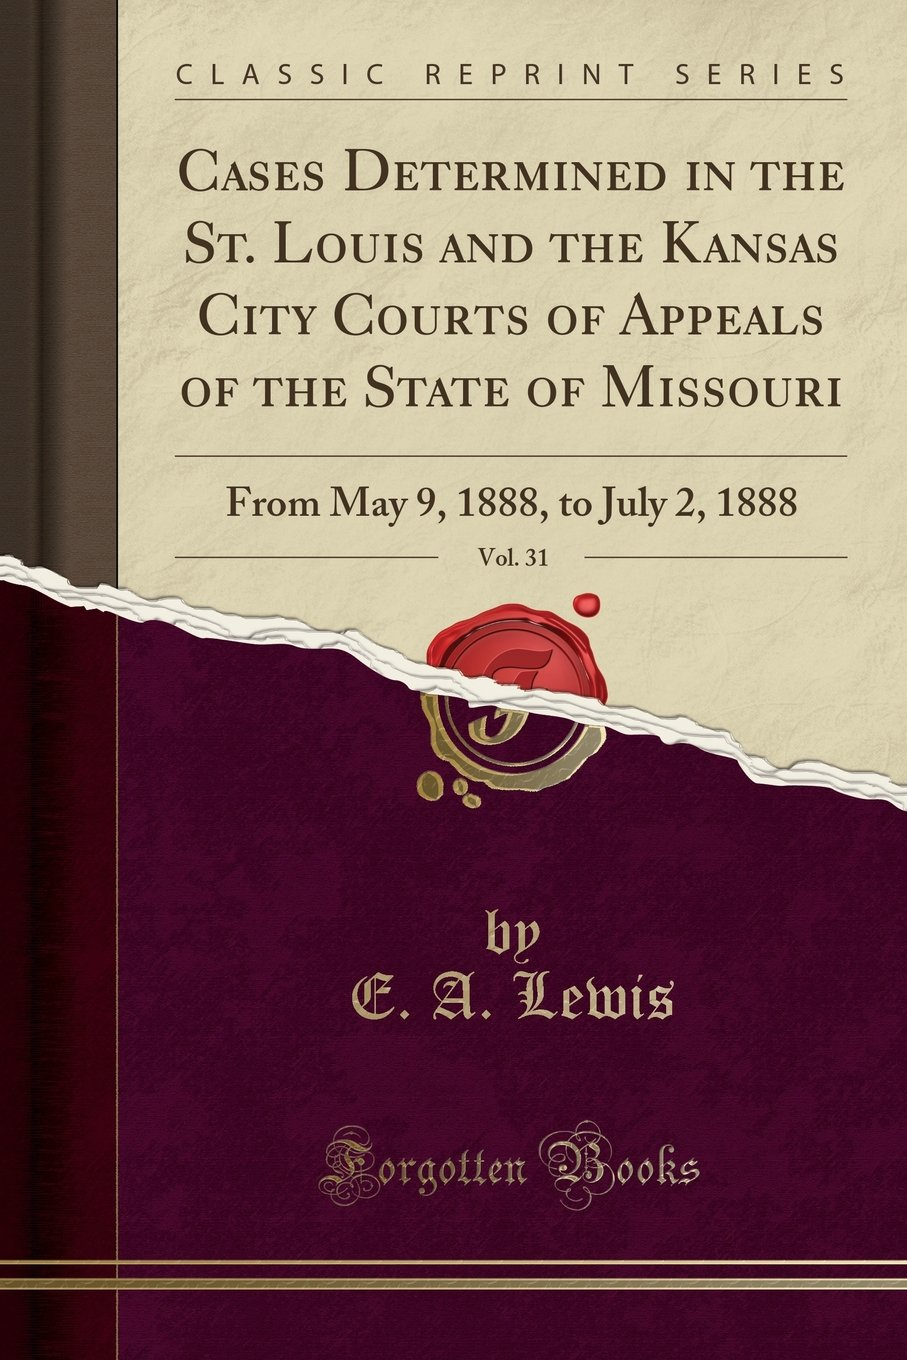 Download Cases Determined in the St. Louis and the Kansas City Courts of Appeals of the State of Missouri, Vol. 31: From May 9, 1888, to July 2, 1888 (Classic Reprint) pdf